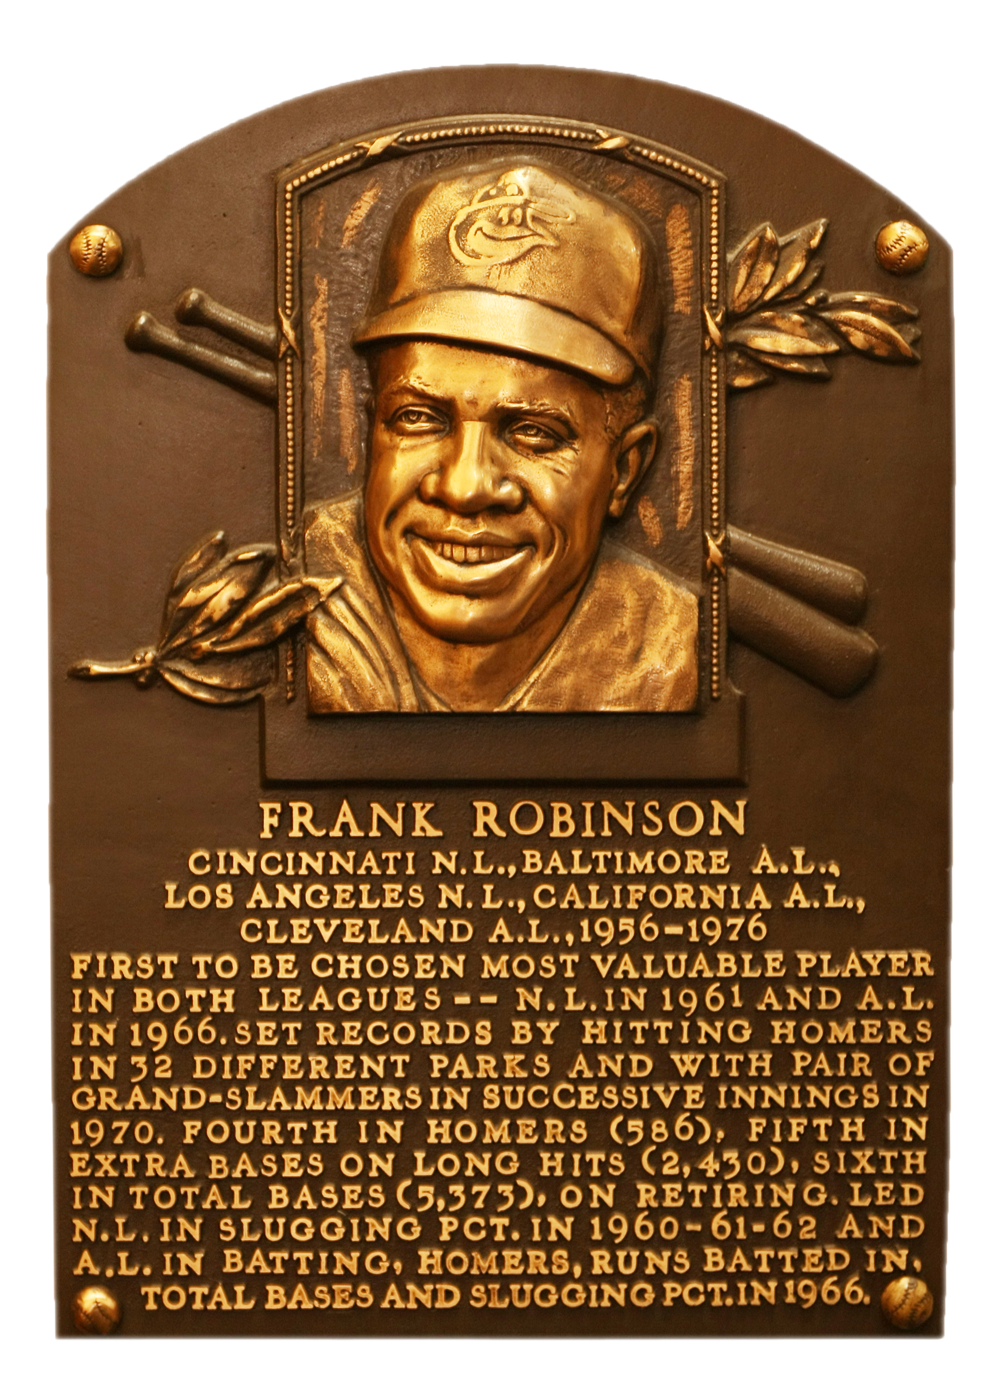 https://baseballhall.org/sites/default/files/Robinson_Frank_Plaque_NBL.png